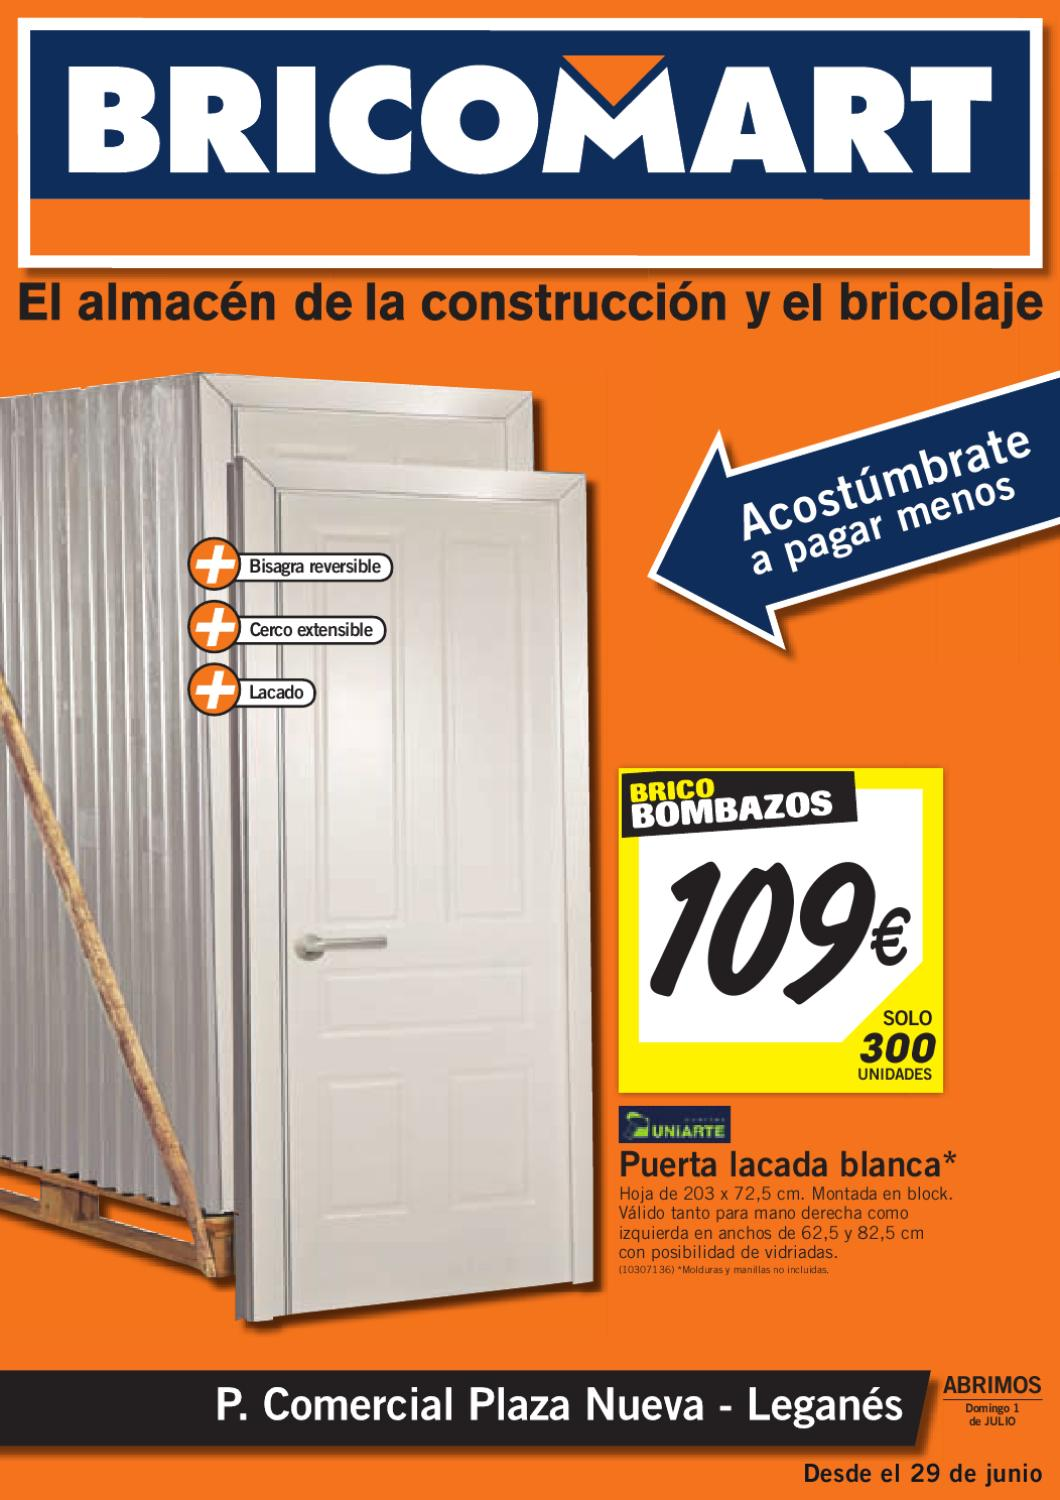 Bricomart catalogo folleto hogar 30 julio 2012 by for Puertas interior bricomart